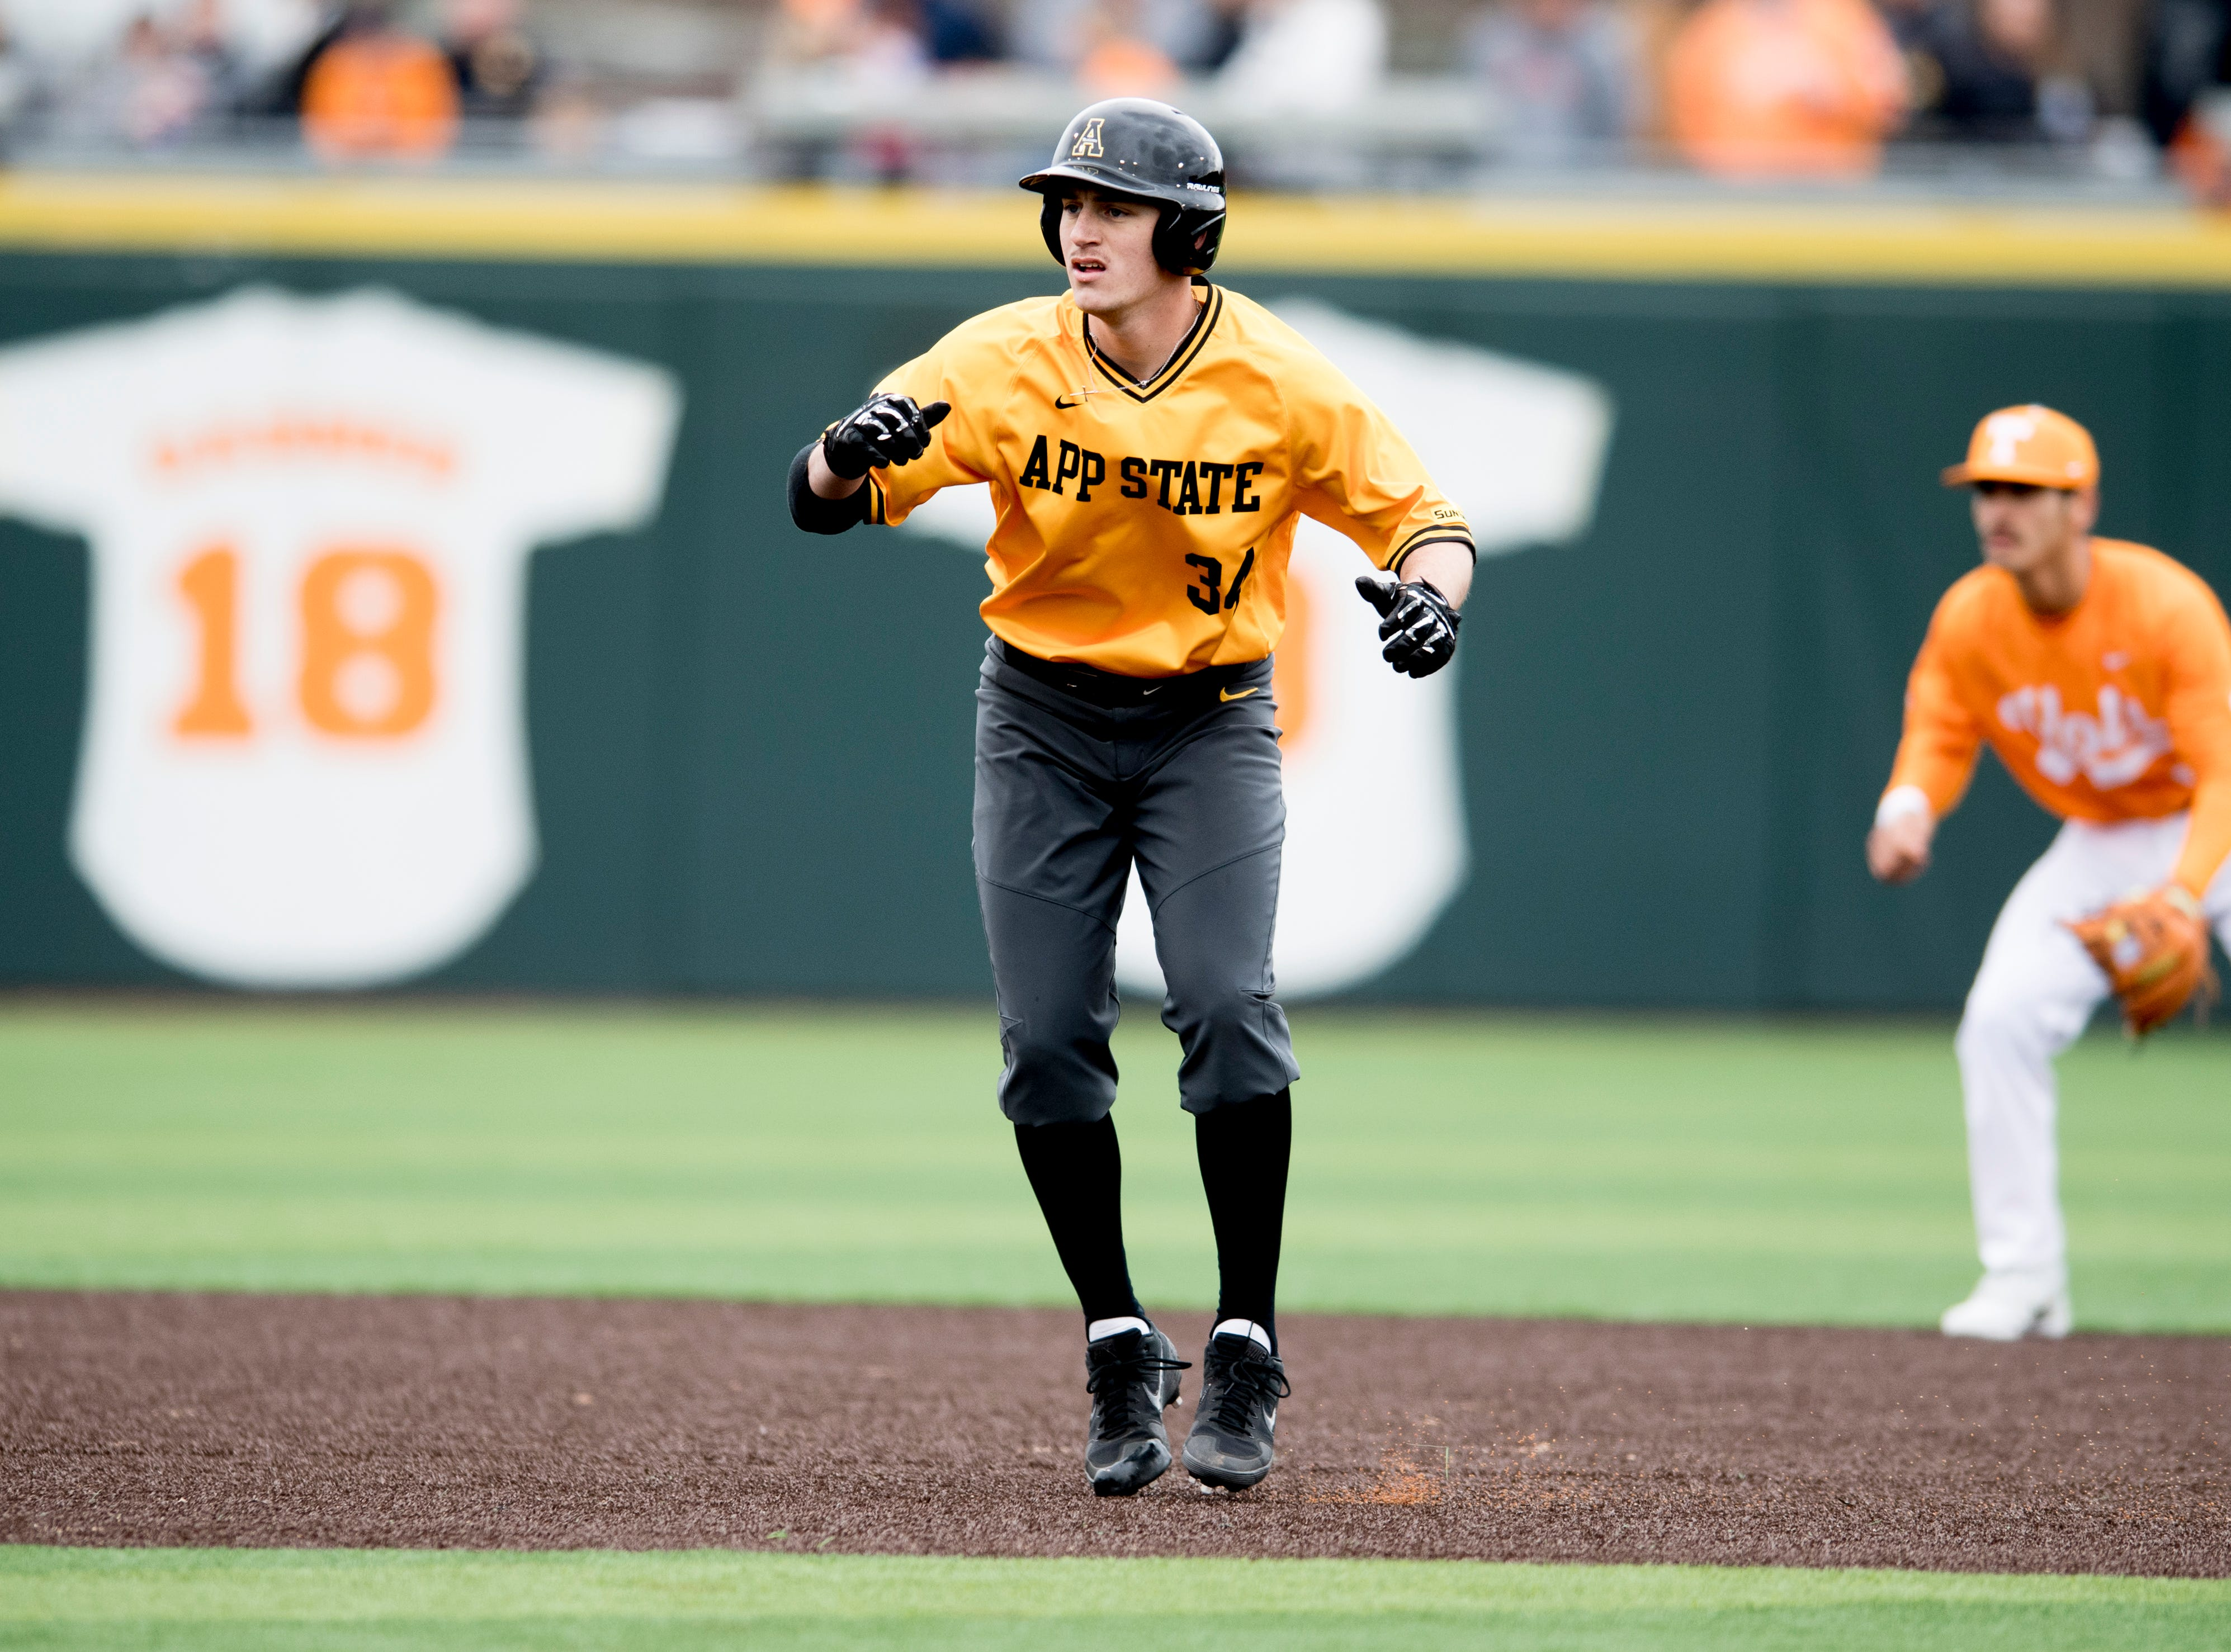 Appalachian State's  Phillip Cole (34) looks to steal second during a Tennessee baseball home opener game against Appalachian State at Lindsey Nelson Stadium in Knoxville, Tennessee on Saturday, February 16, 2019.